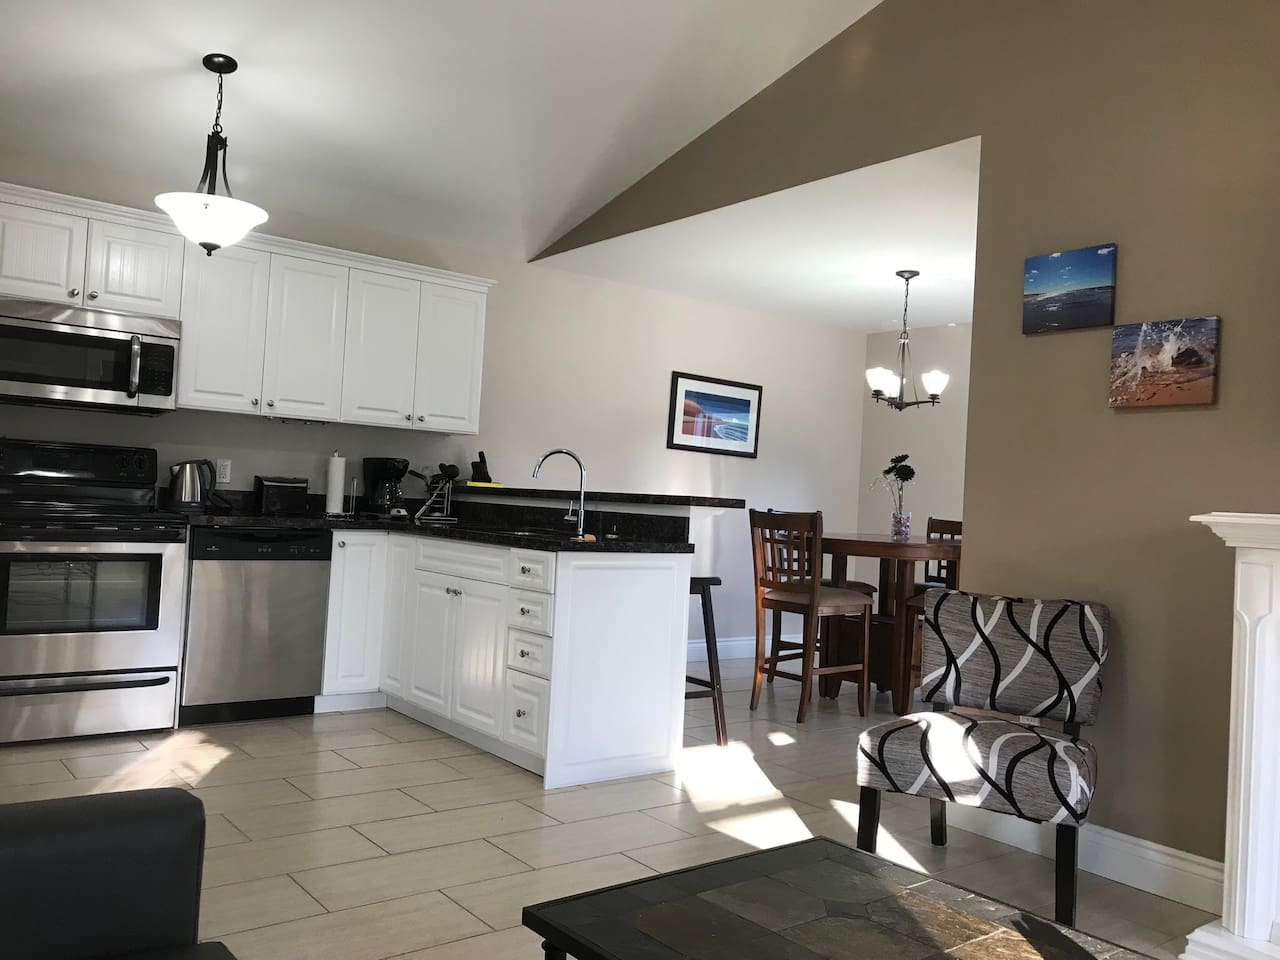 Kitchen, dining, living area, open concept. Patio doors open from the dining room.